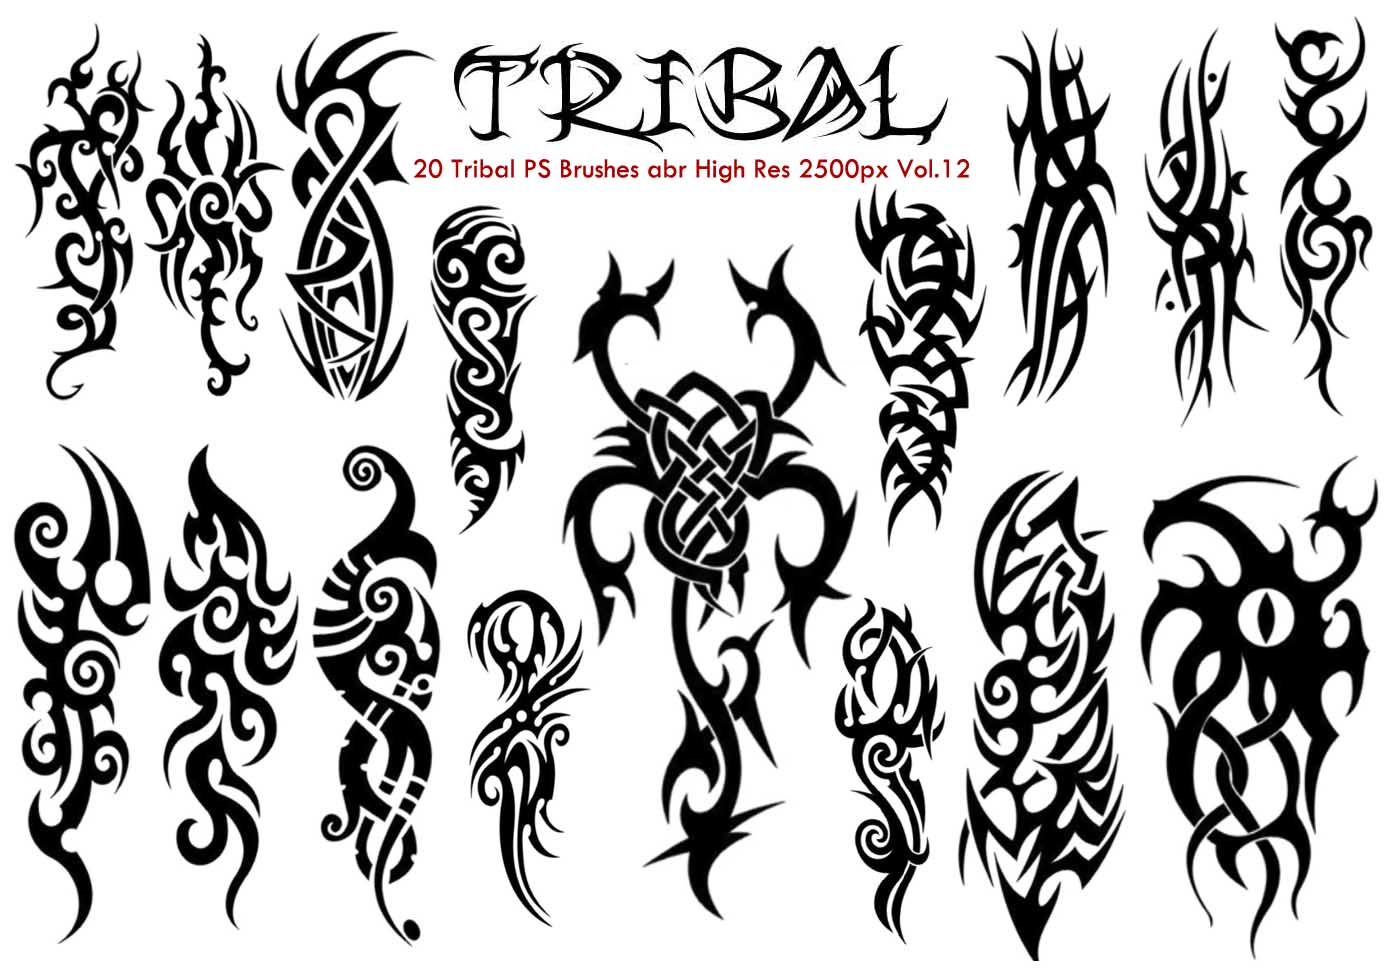 tribal ps brushes free photoshop brushes at brusheezy. Black Bedroom Furniture Sets. Home Design Ideas